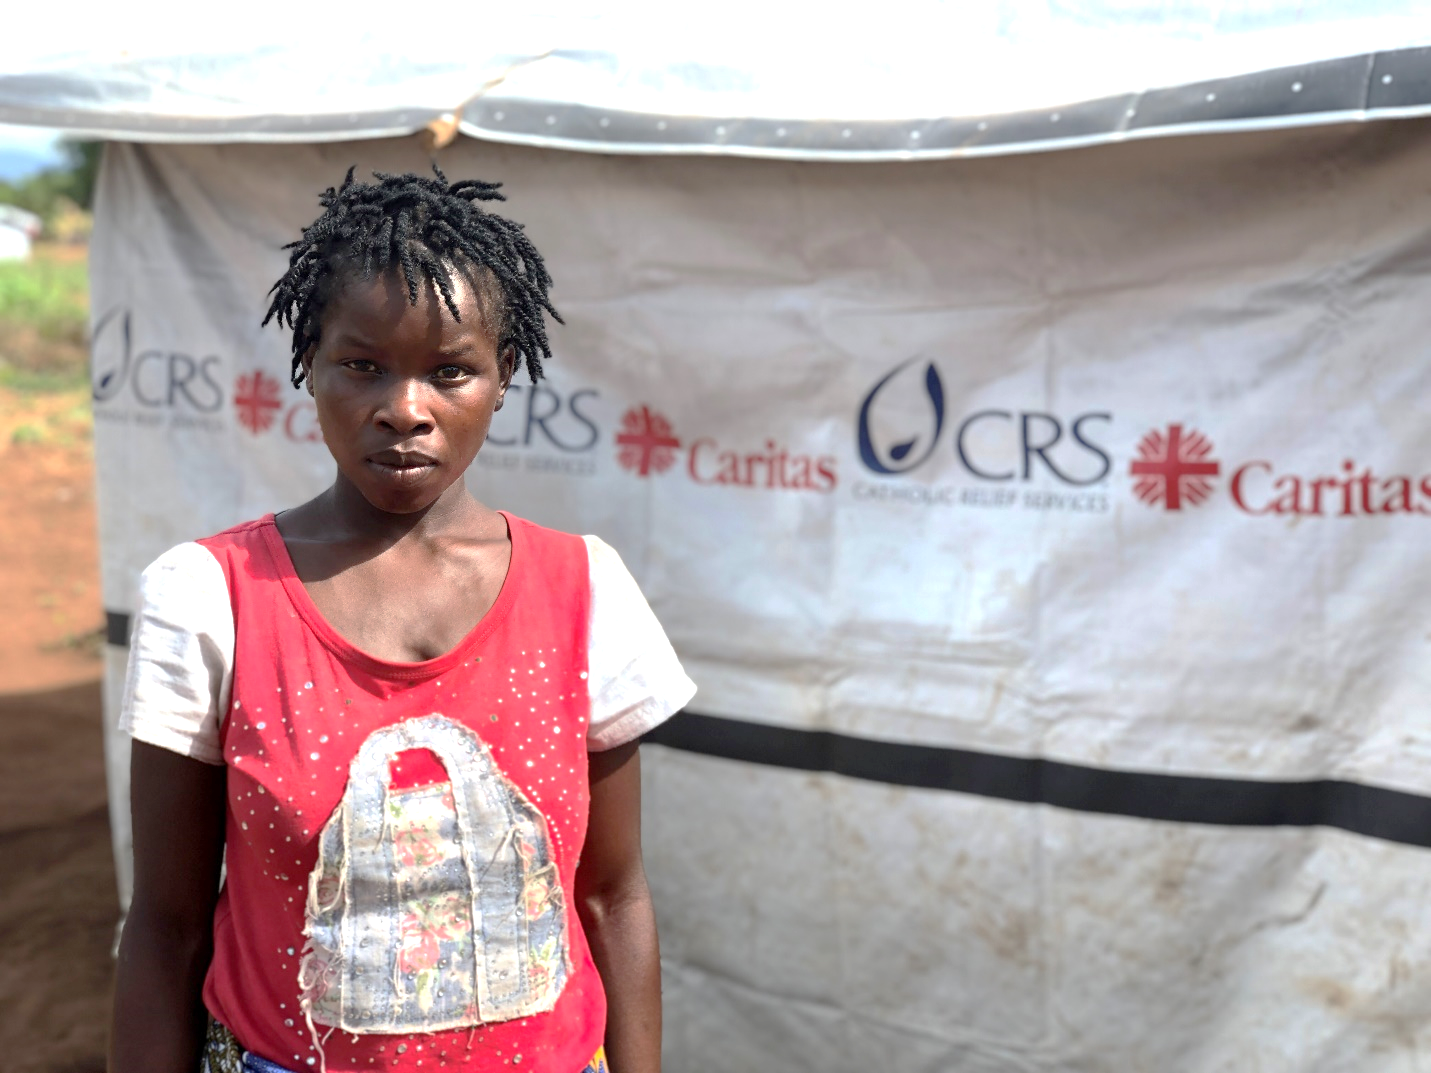 Jocelyn (name changed for confidentiality) is 24 and has five children. They all live together in a tent donated by aid agencies after her home was destroyed by Cyclone Idai in rural Mozambique.